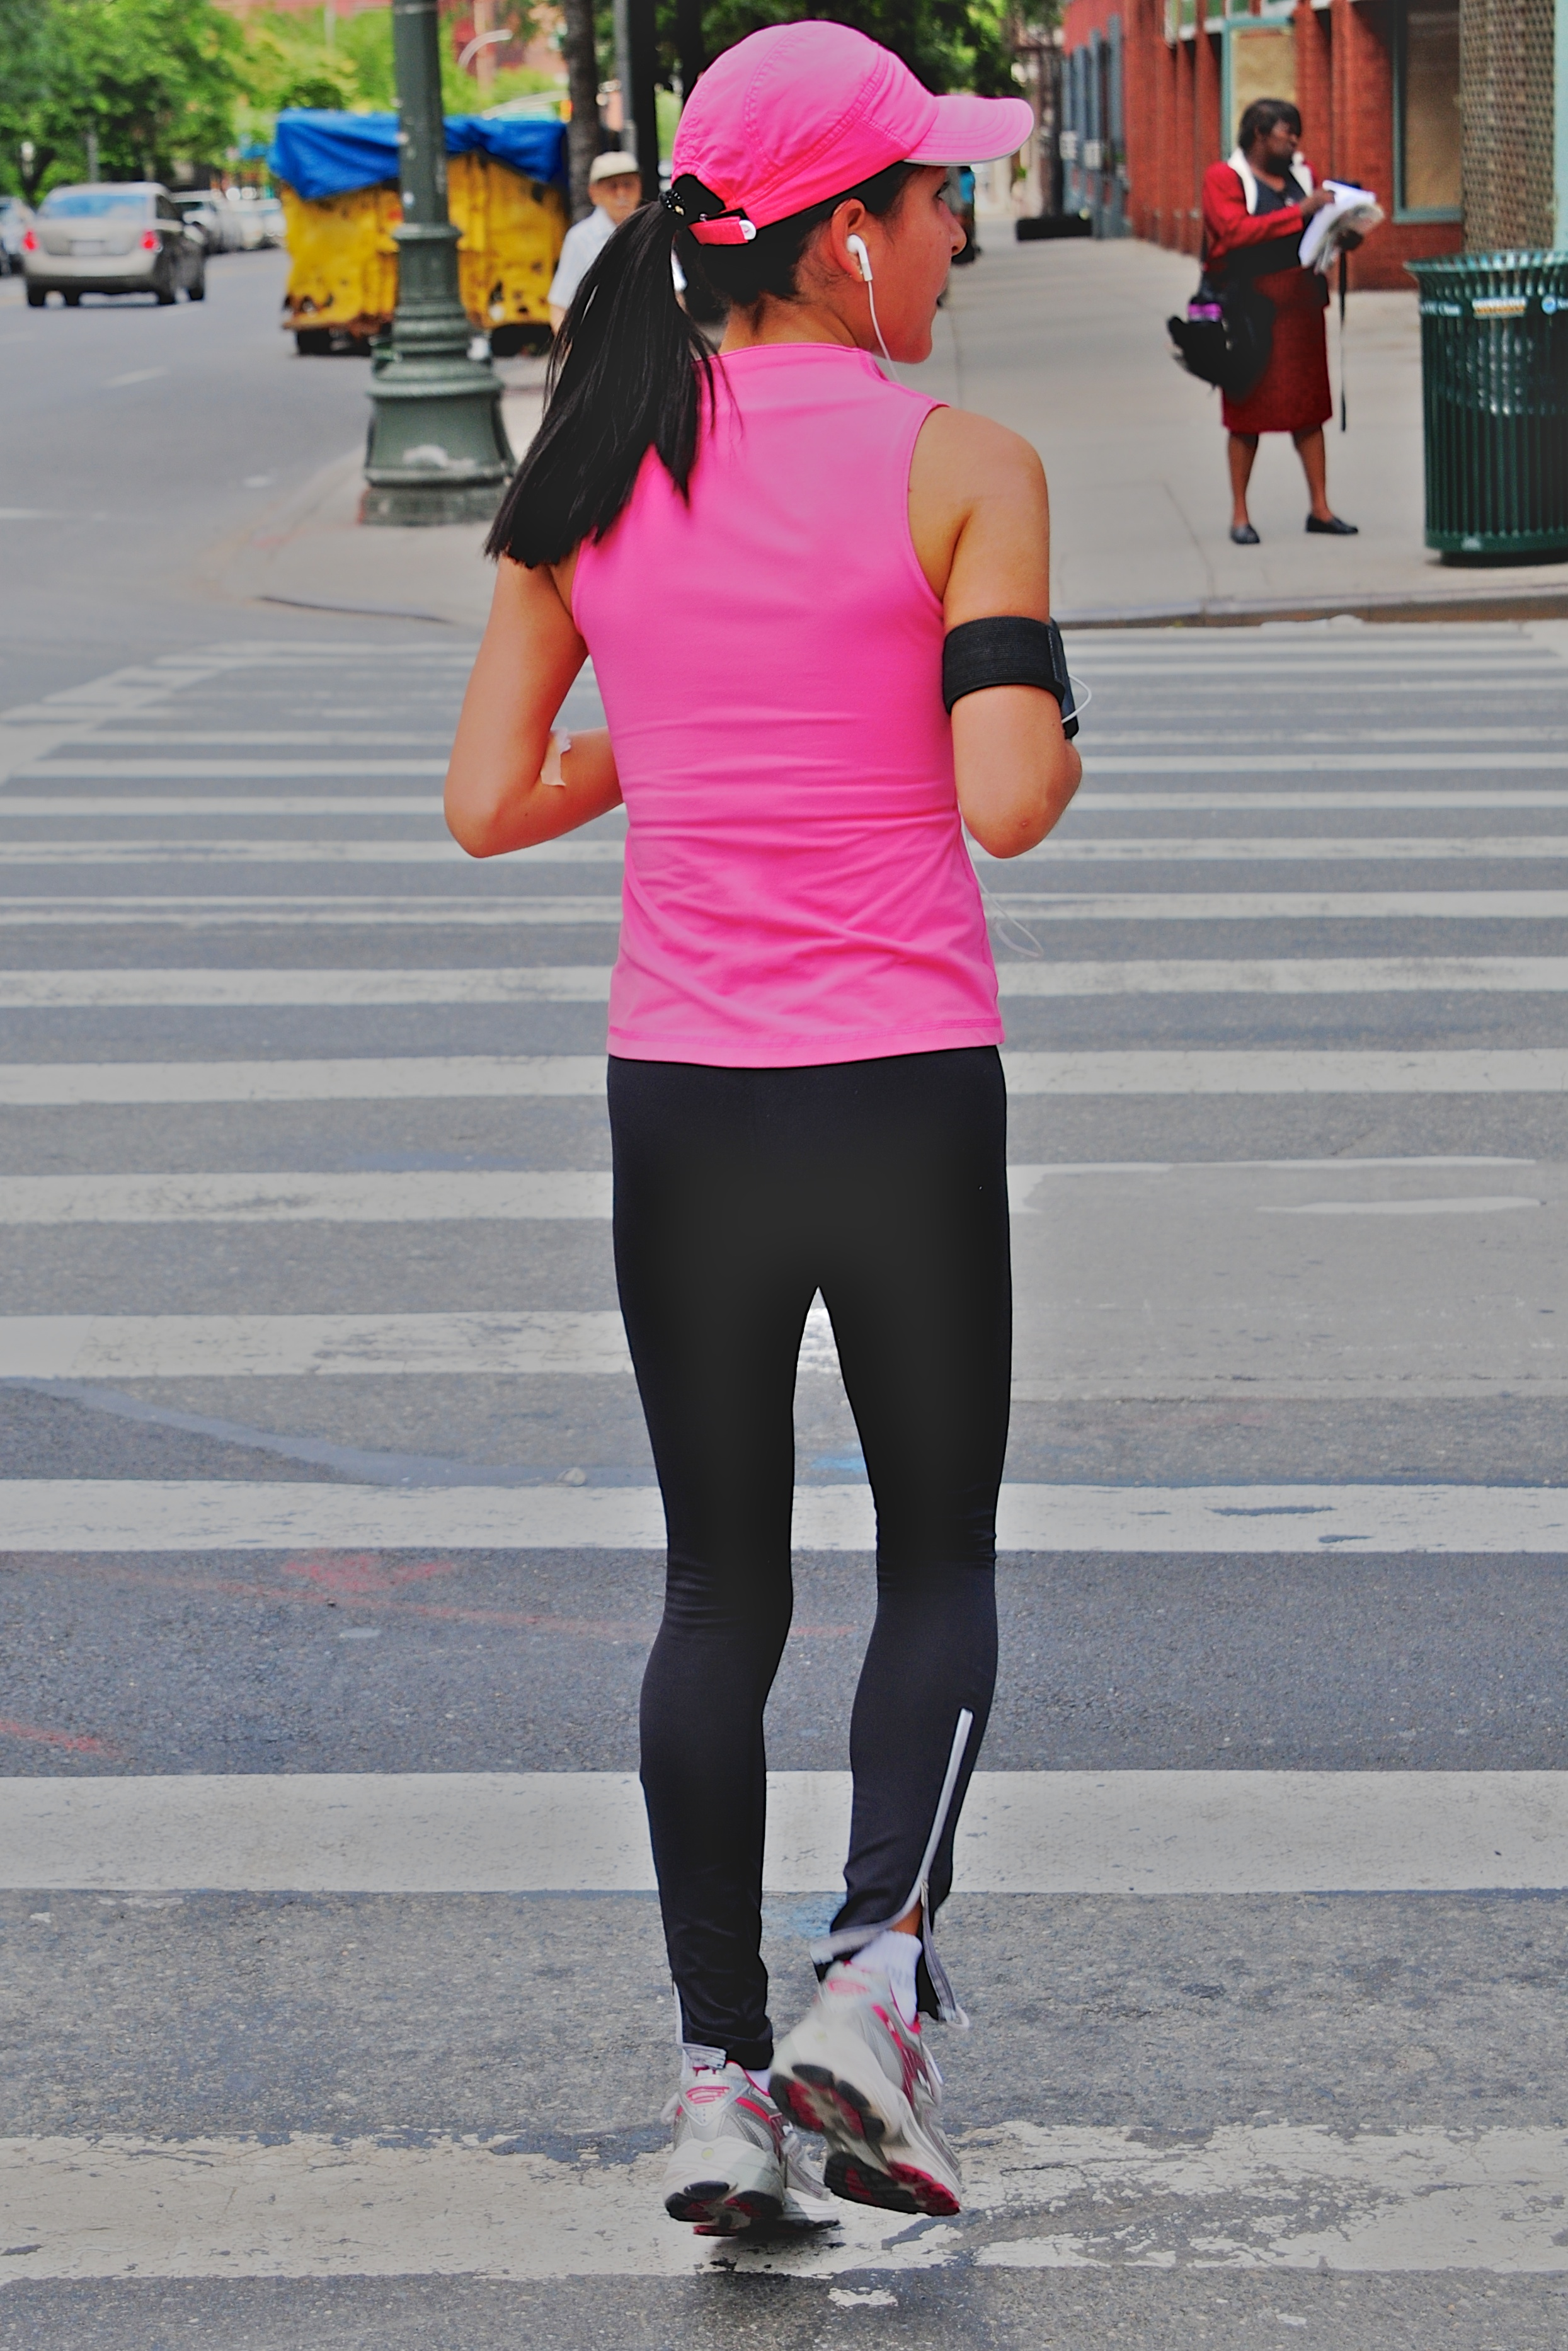 Jogger in Upper East Side New York City. Photo by Ed Yourdon.